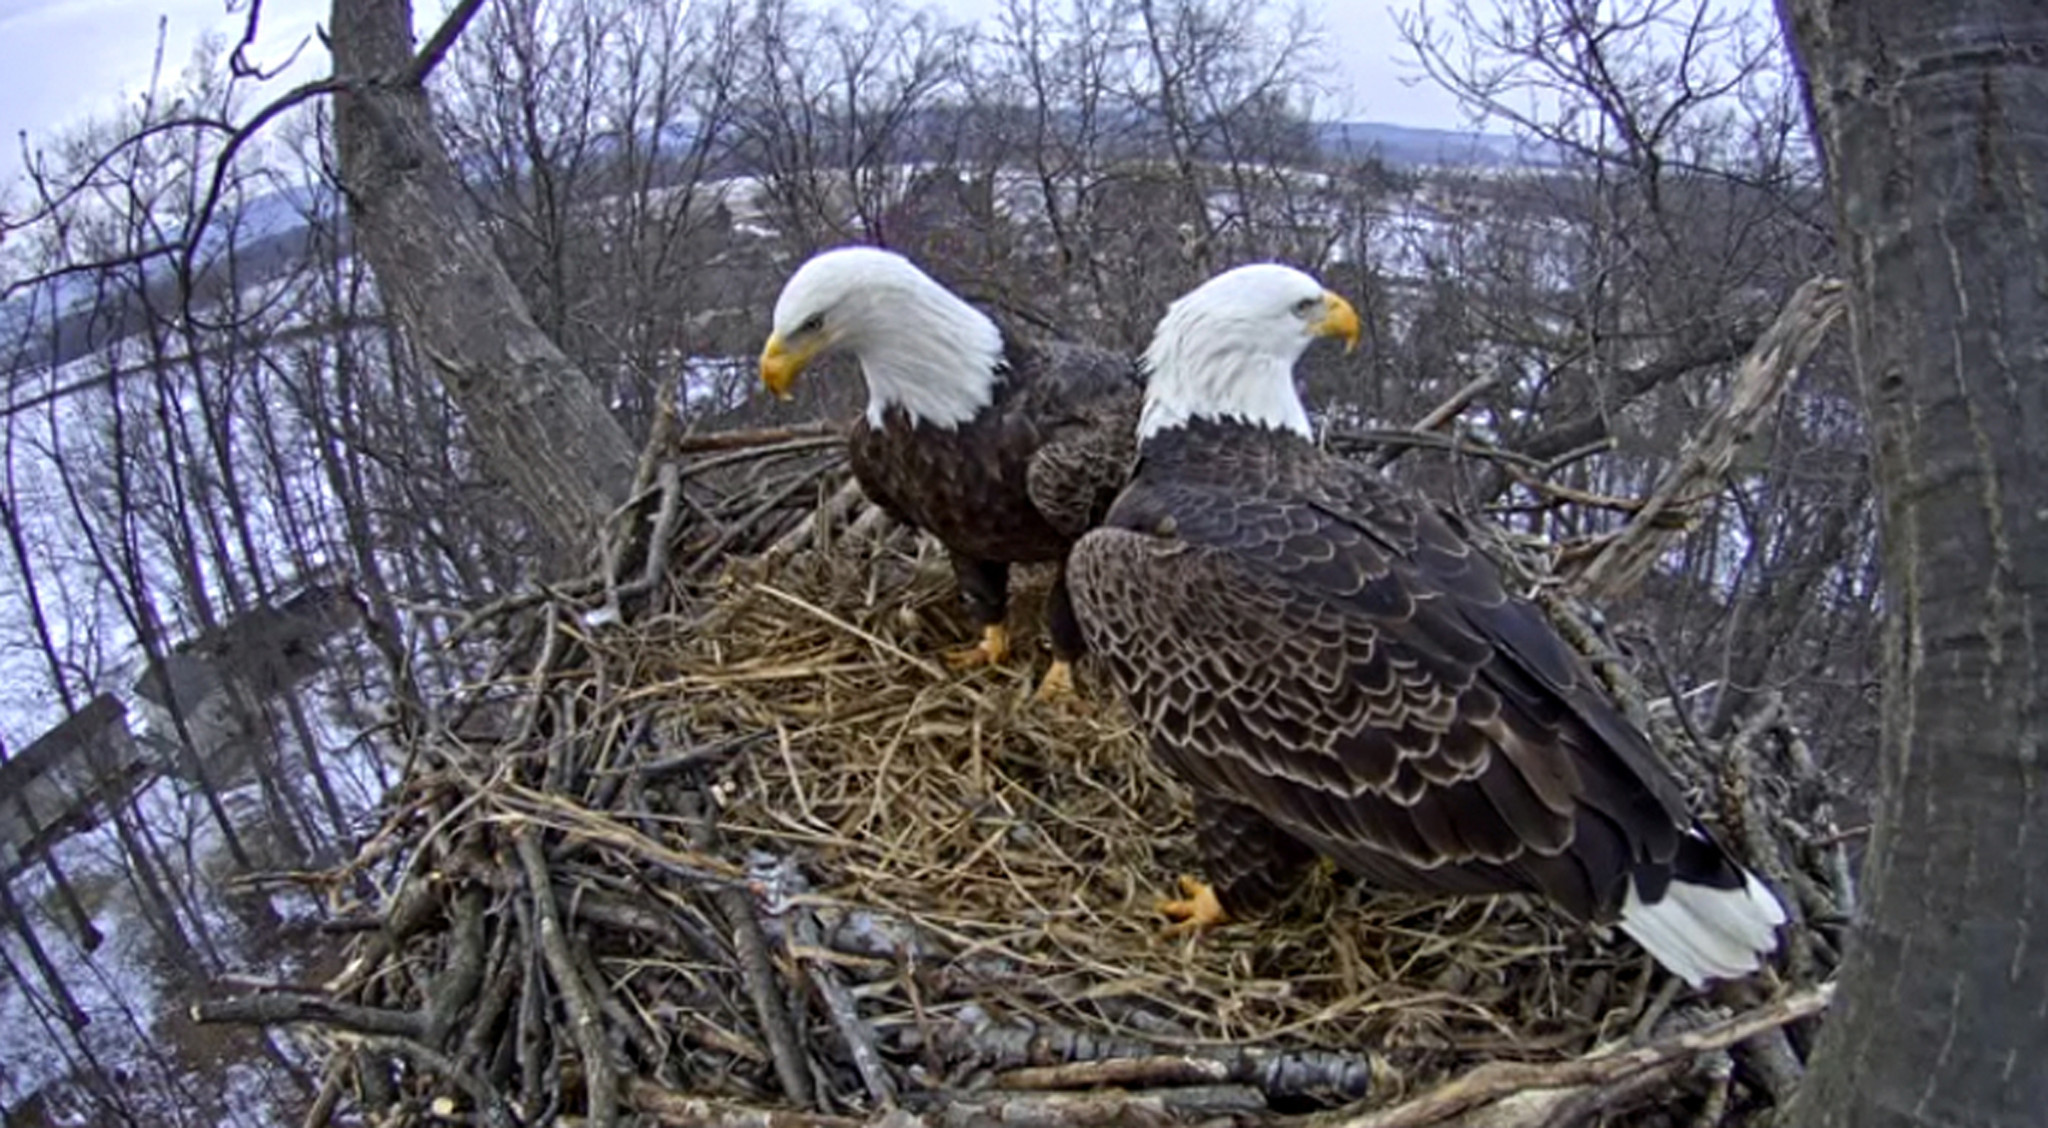 Live Watch Pa Bald Eagle Protect New Eggs